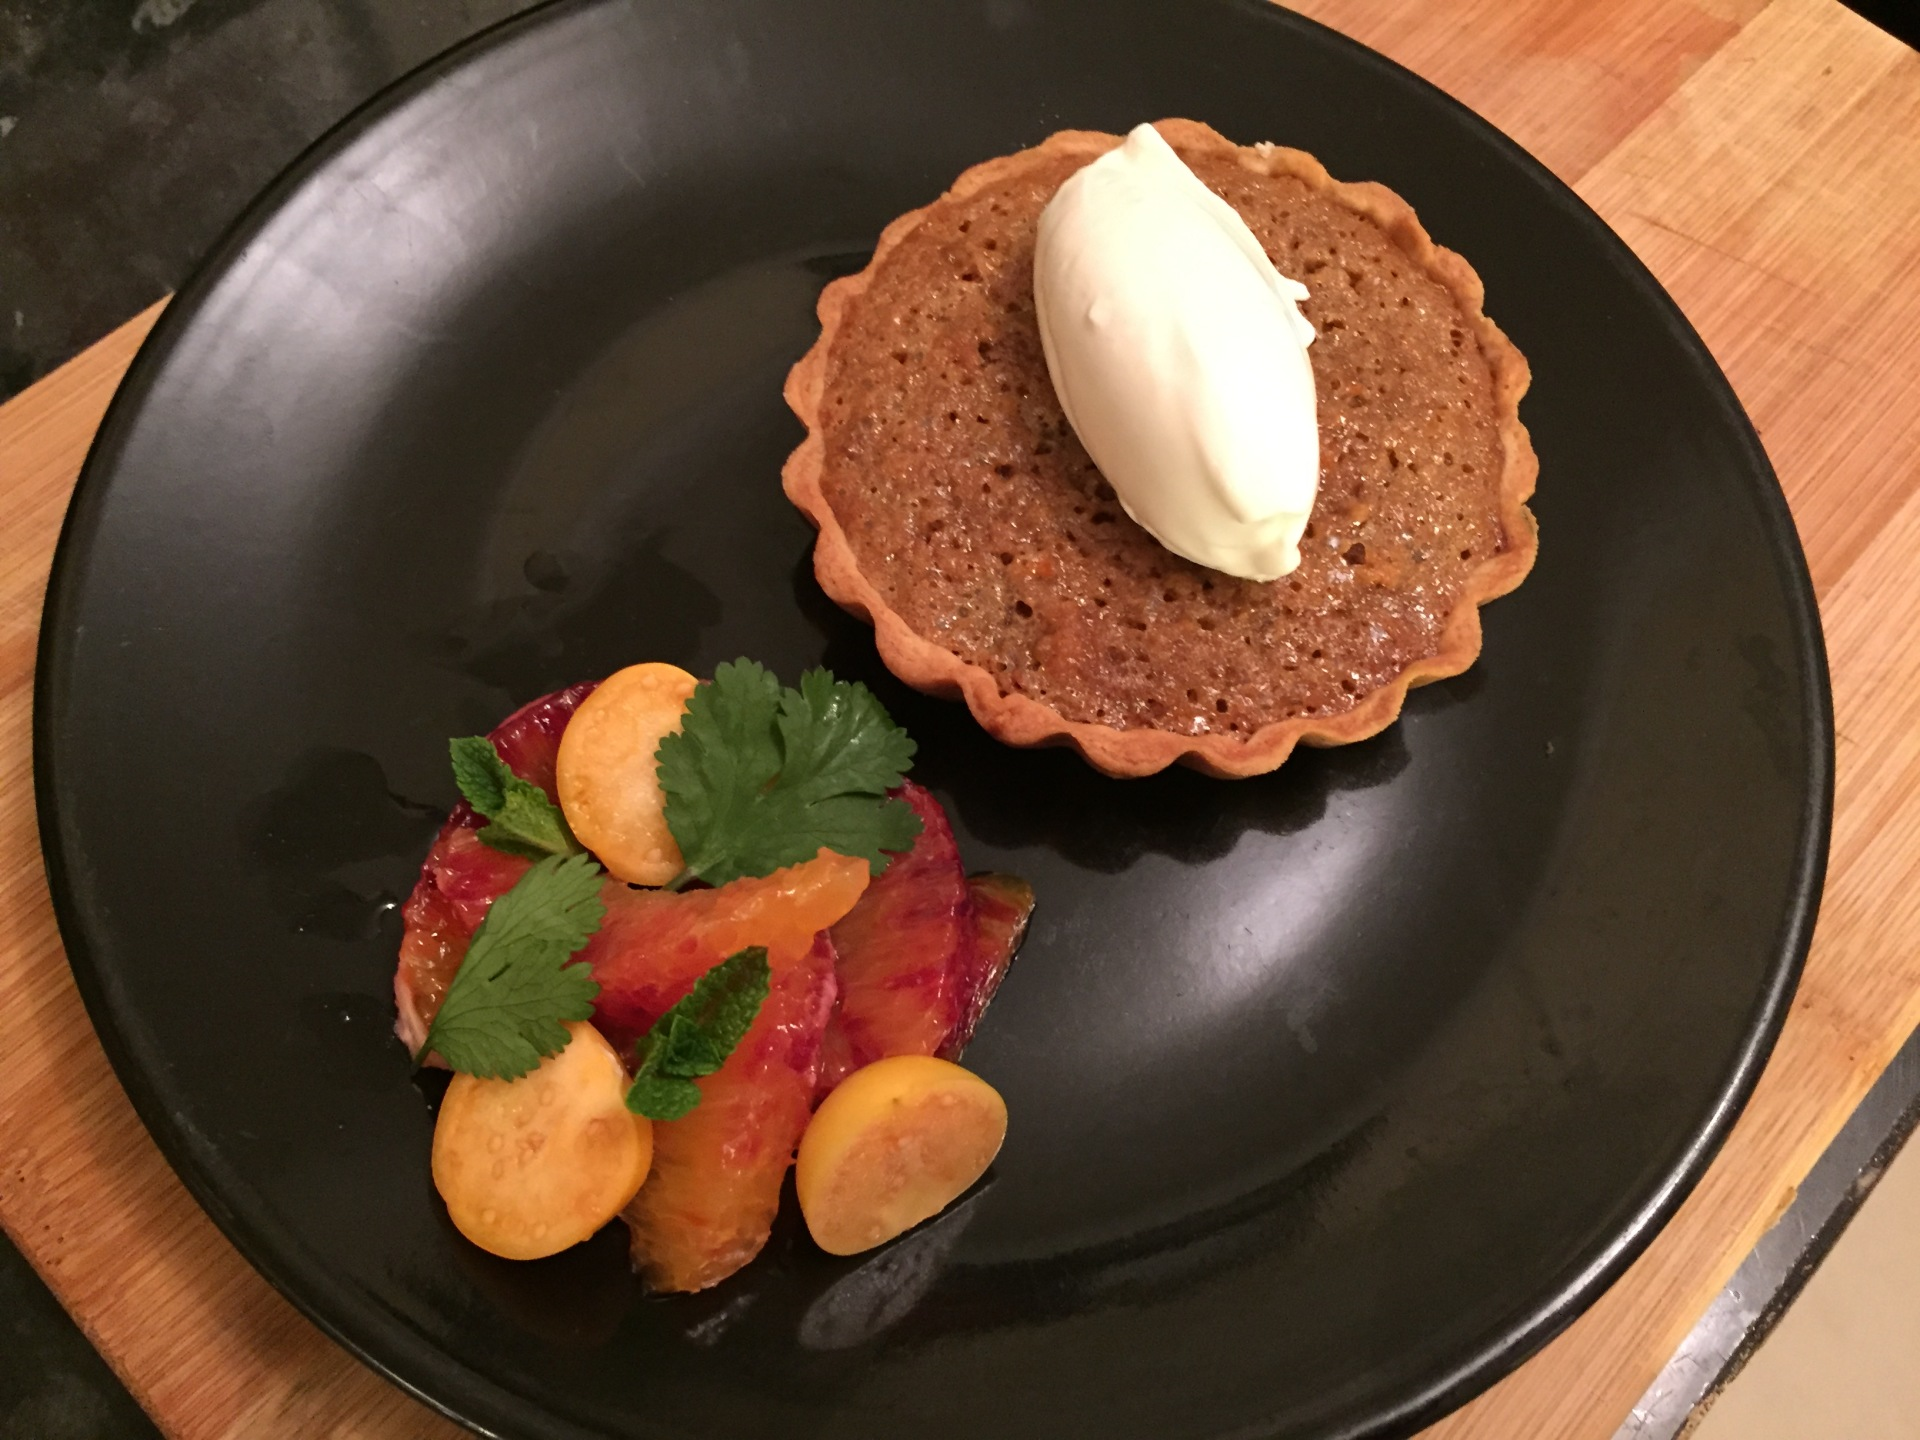 Blood orange treacle tart, orange blossom cream, physalis and blood orange segments